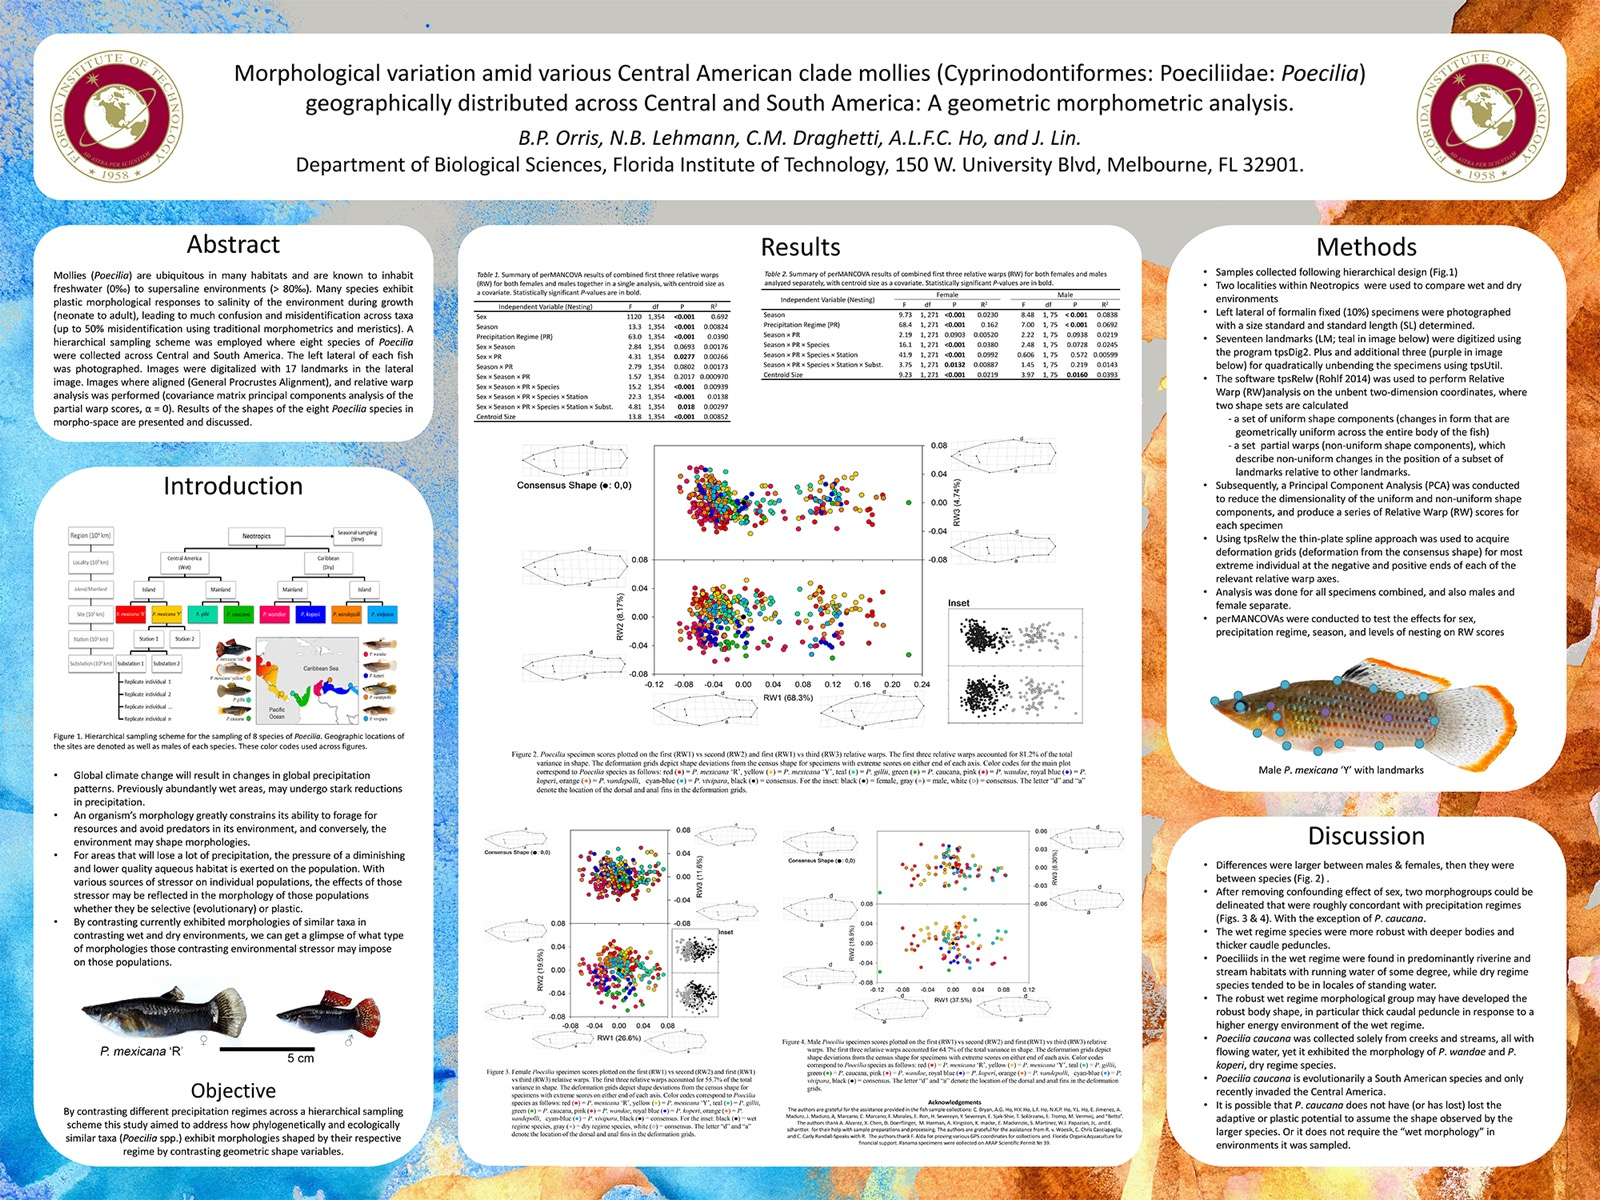 Poster design guidelines - Example Poster For Masna Scientific Poster Session